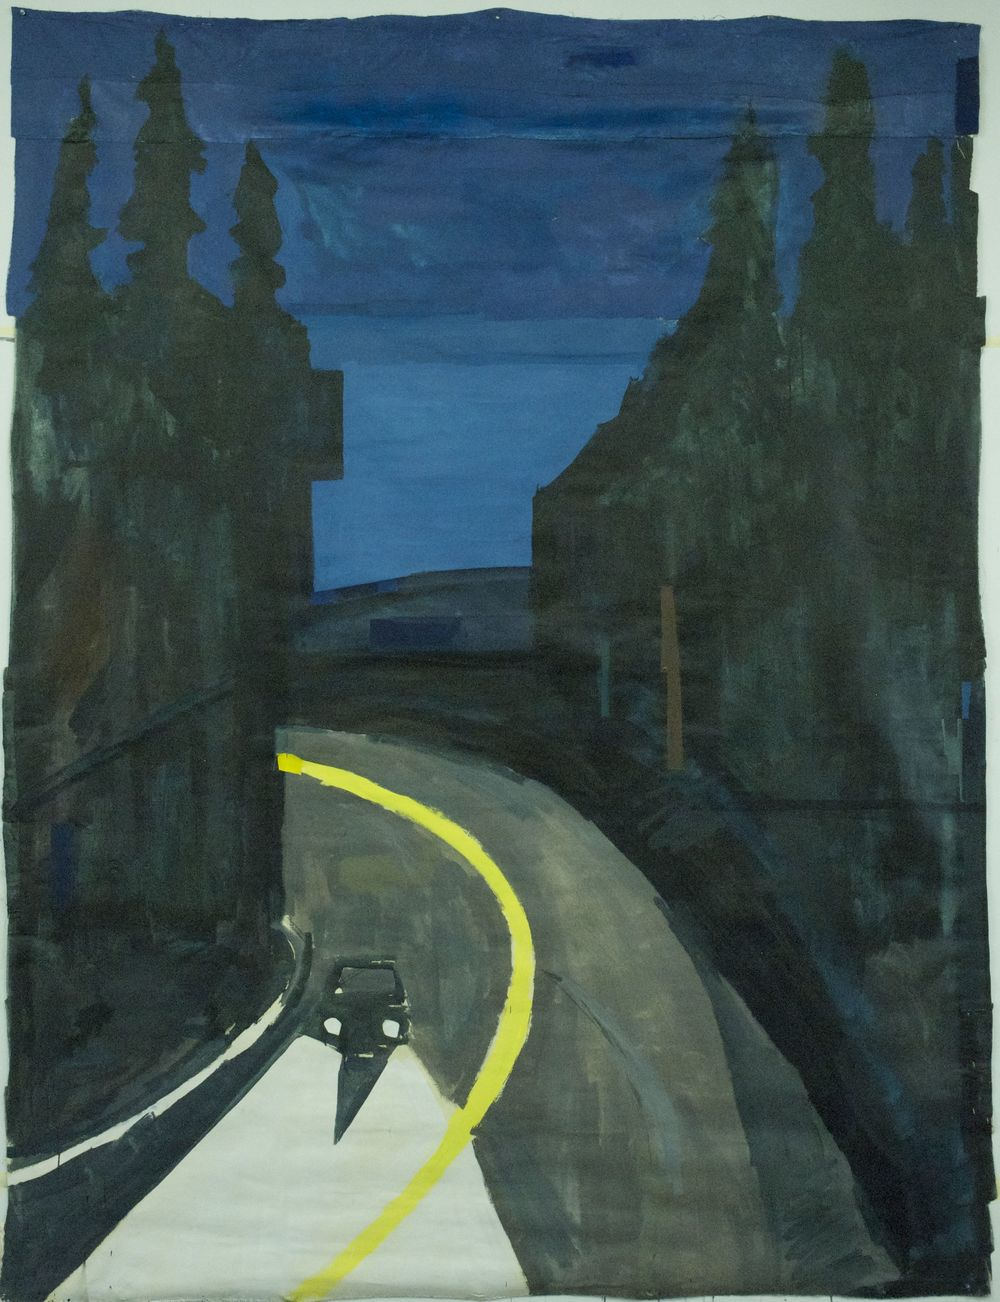 Night Drive , acrylic gouache and paper on linen, 96x72 inches, 2015